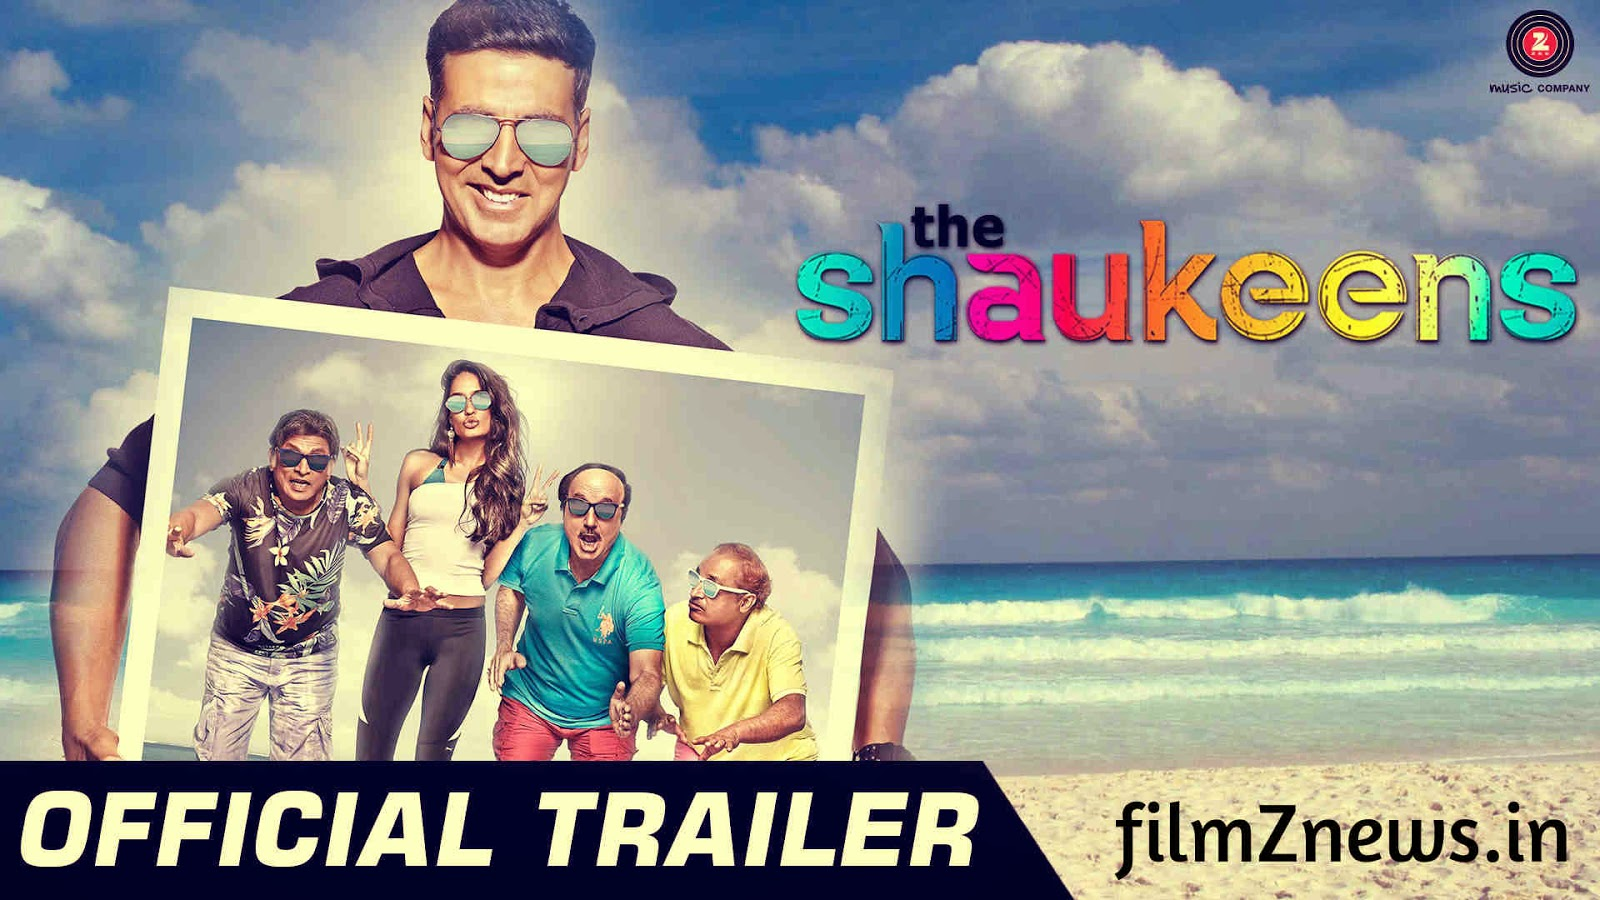 The Shaukeens (2014) Official Trailer Video